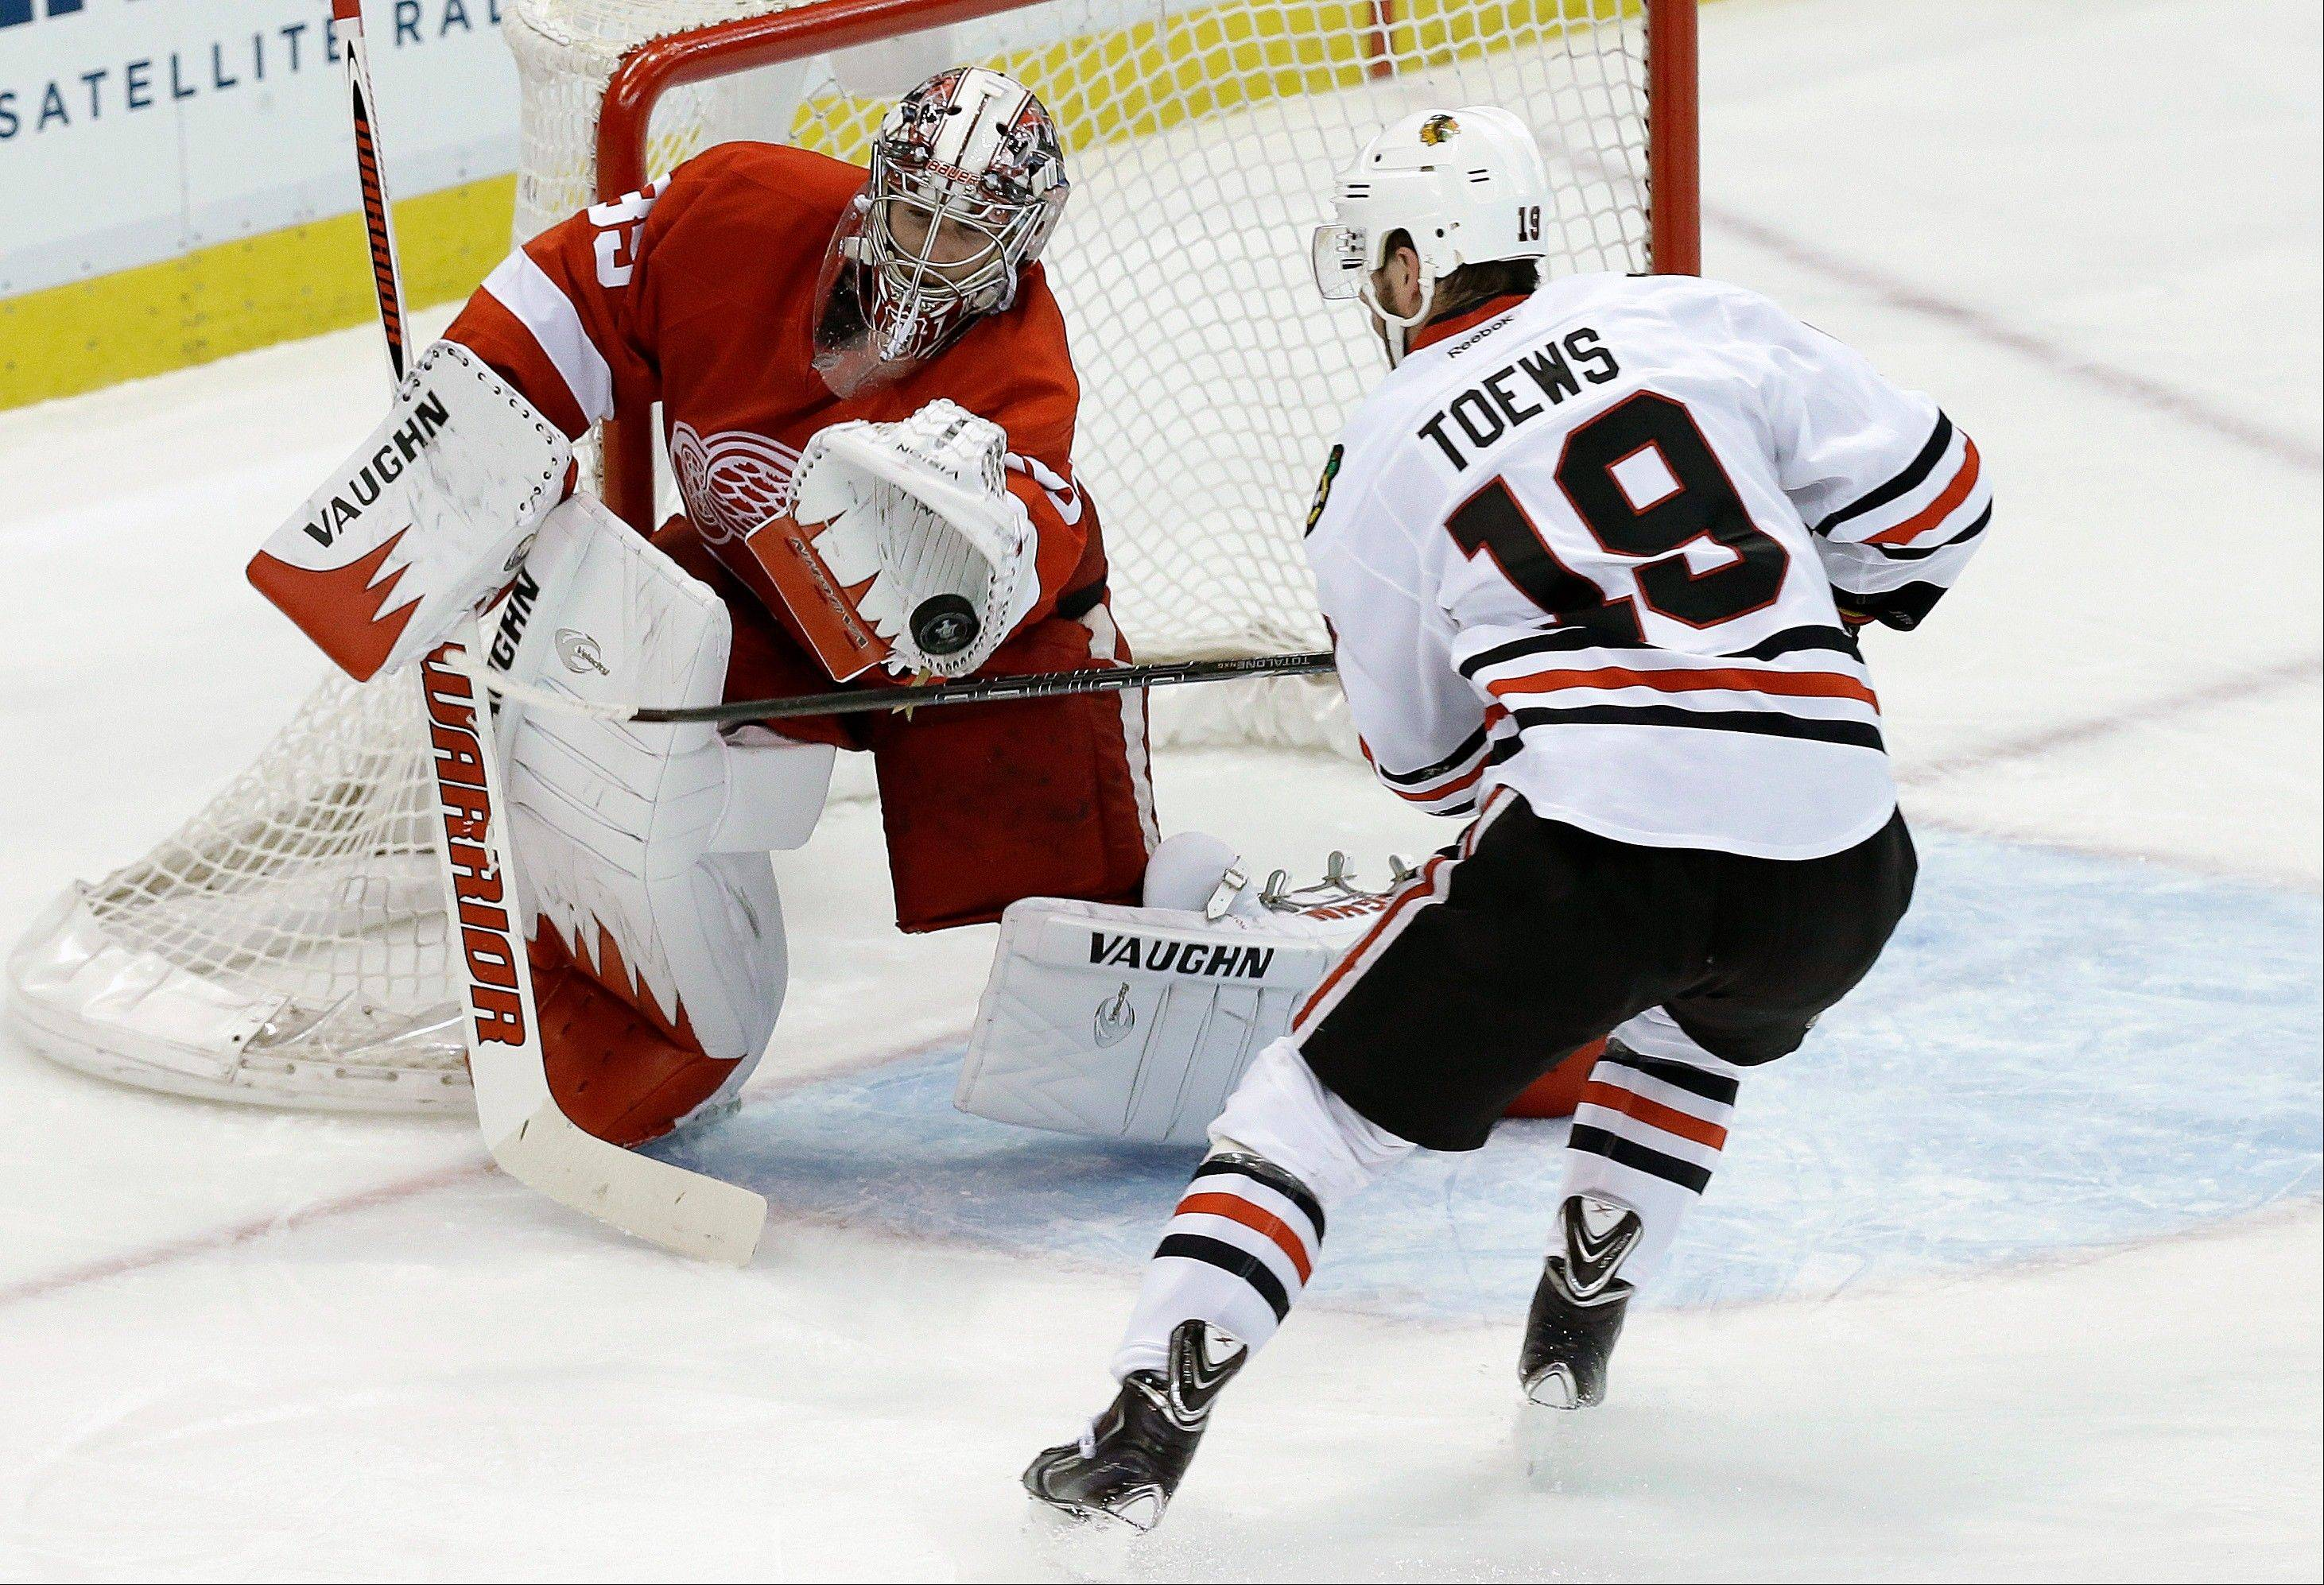 Detroit Red Wings goalie Jimmy Howard (35) stops a shot by Chicago Blackhawks center Jonathan Toews (19) during the second period.